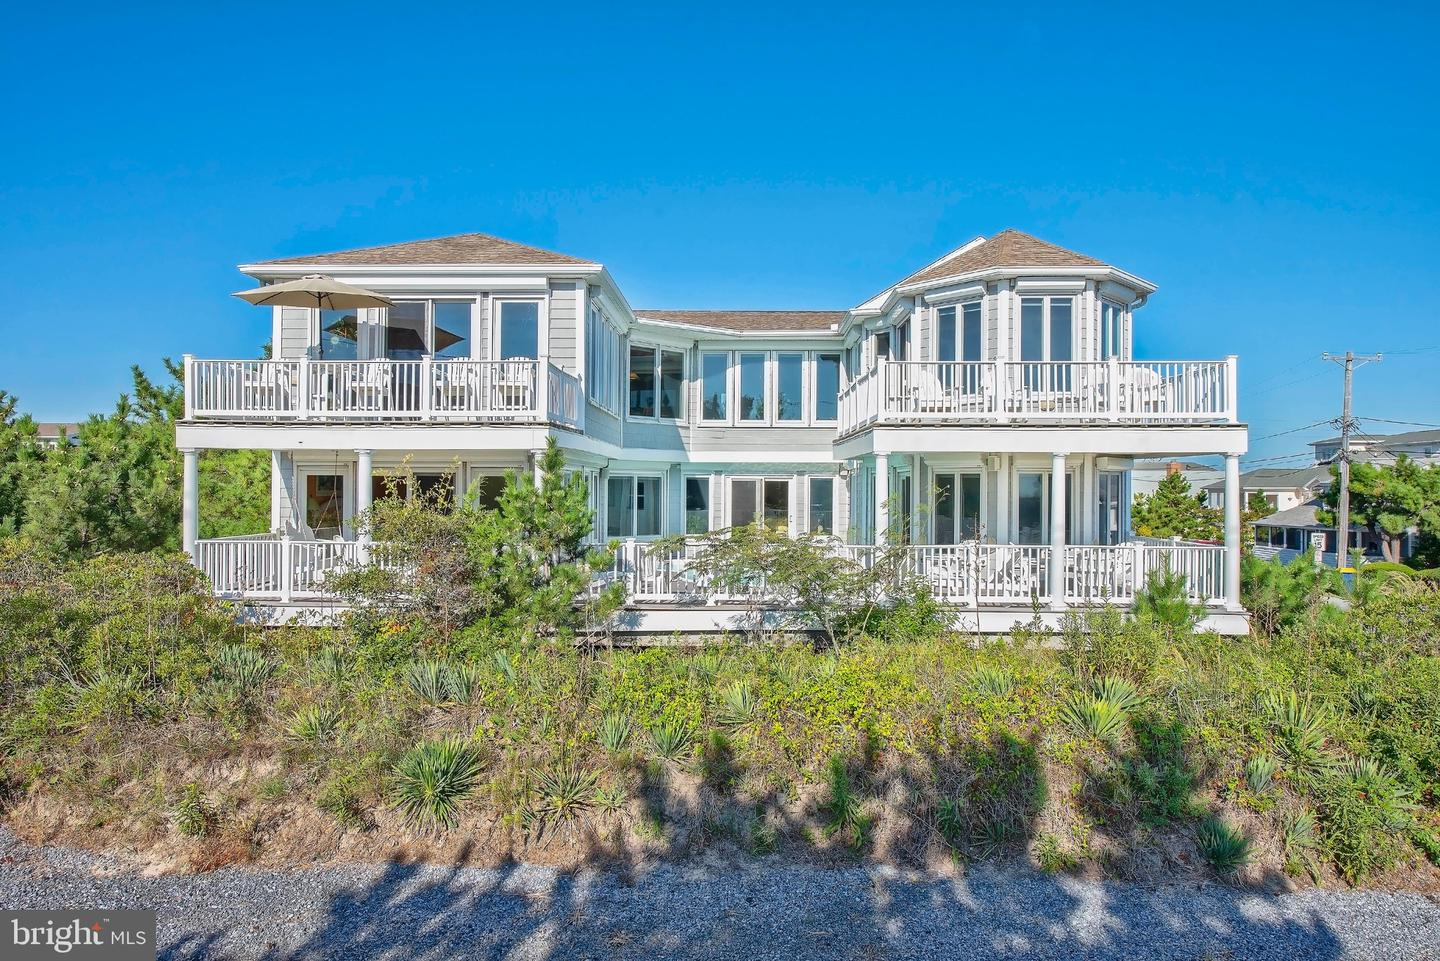 DESU147280-302007866995-2019-08-31-13-42-10 810 Bunting Ave | Fenwick Island, DE Real Estate For Sale | MLS# Desu147280  - 1st Choice Properties